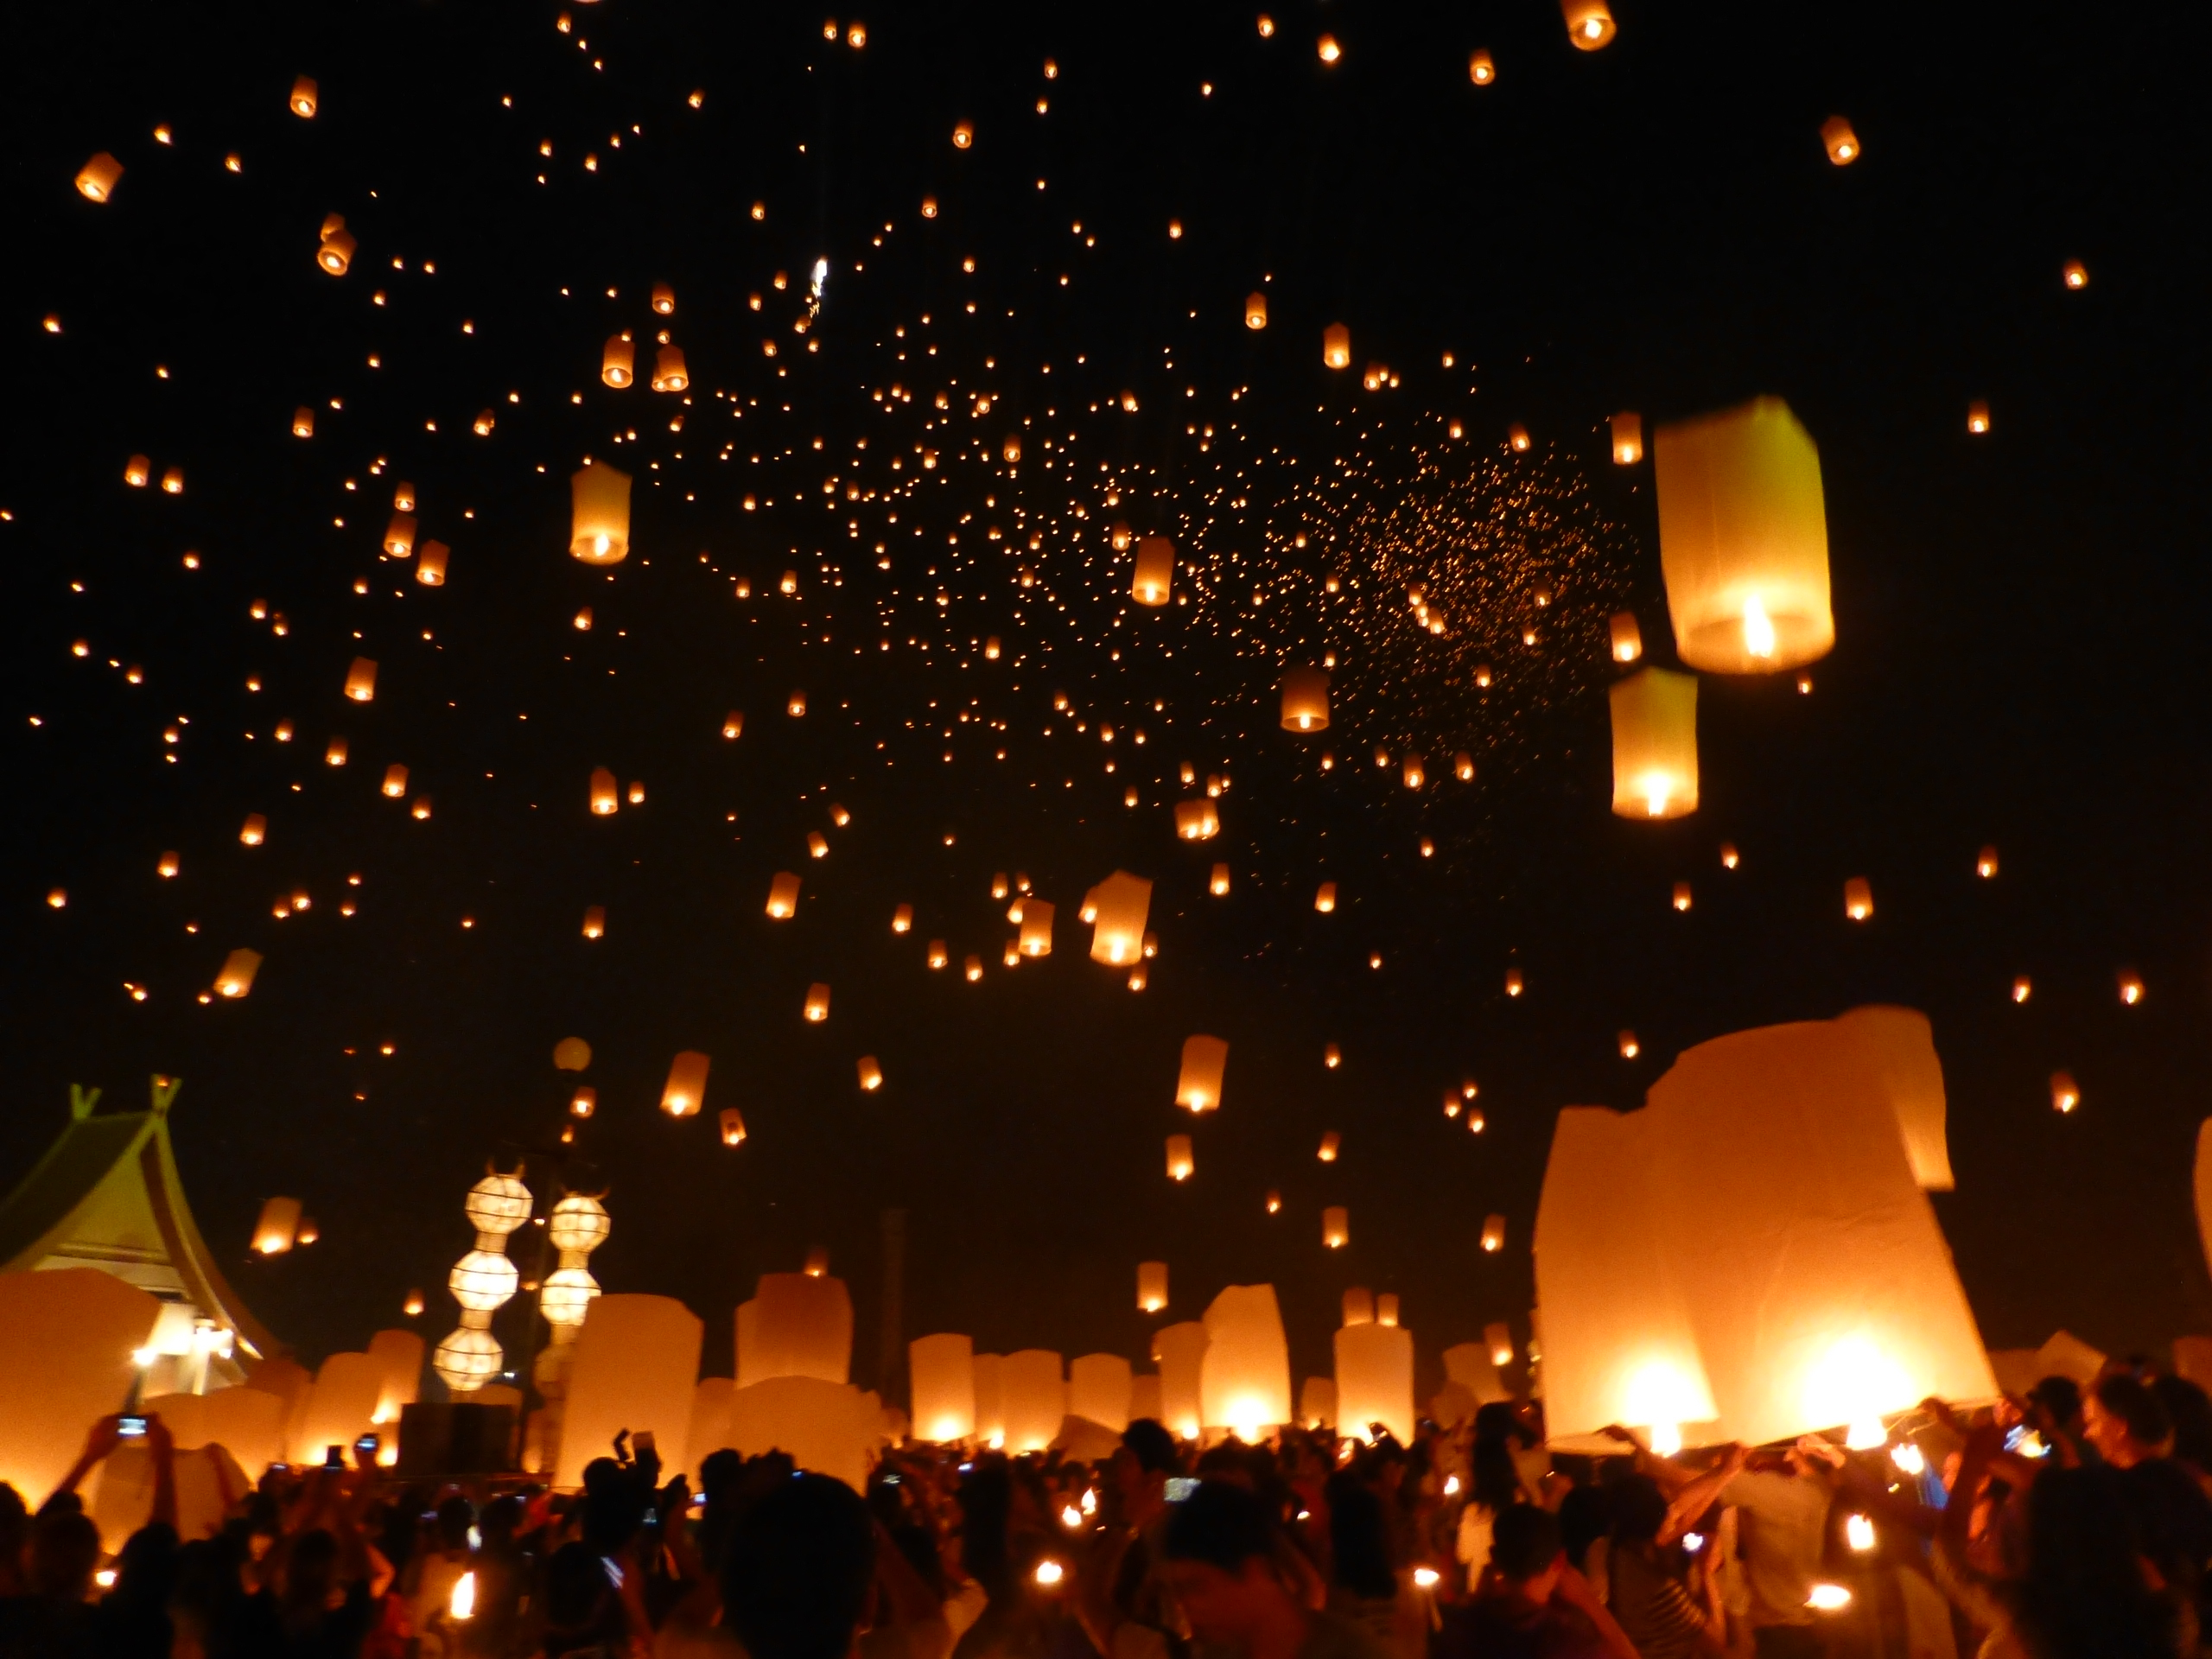 Falling Stars Wallpaper How To Participate In Yi Peng The Sky Lantern Festival